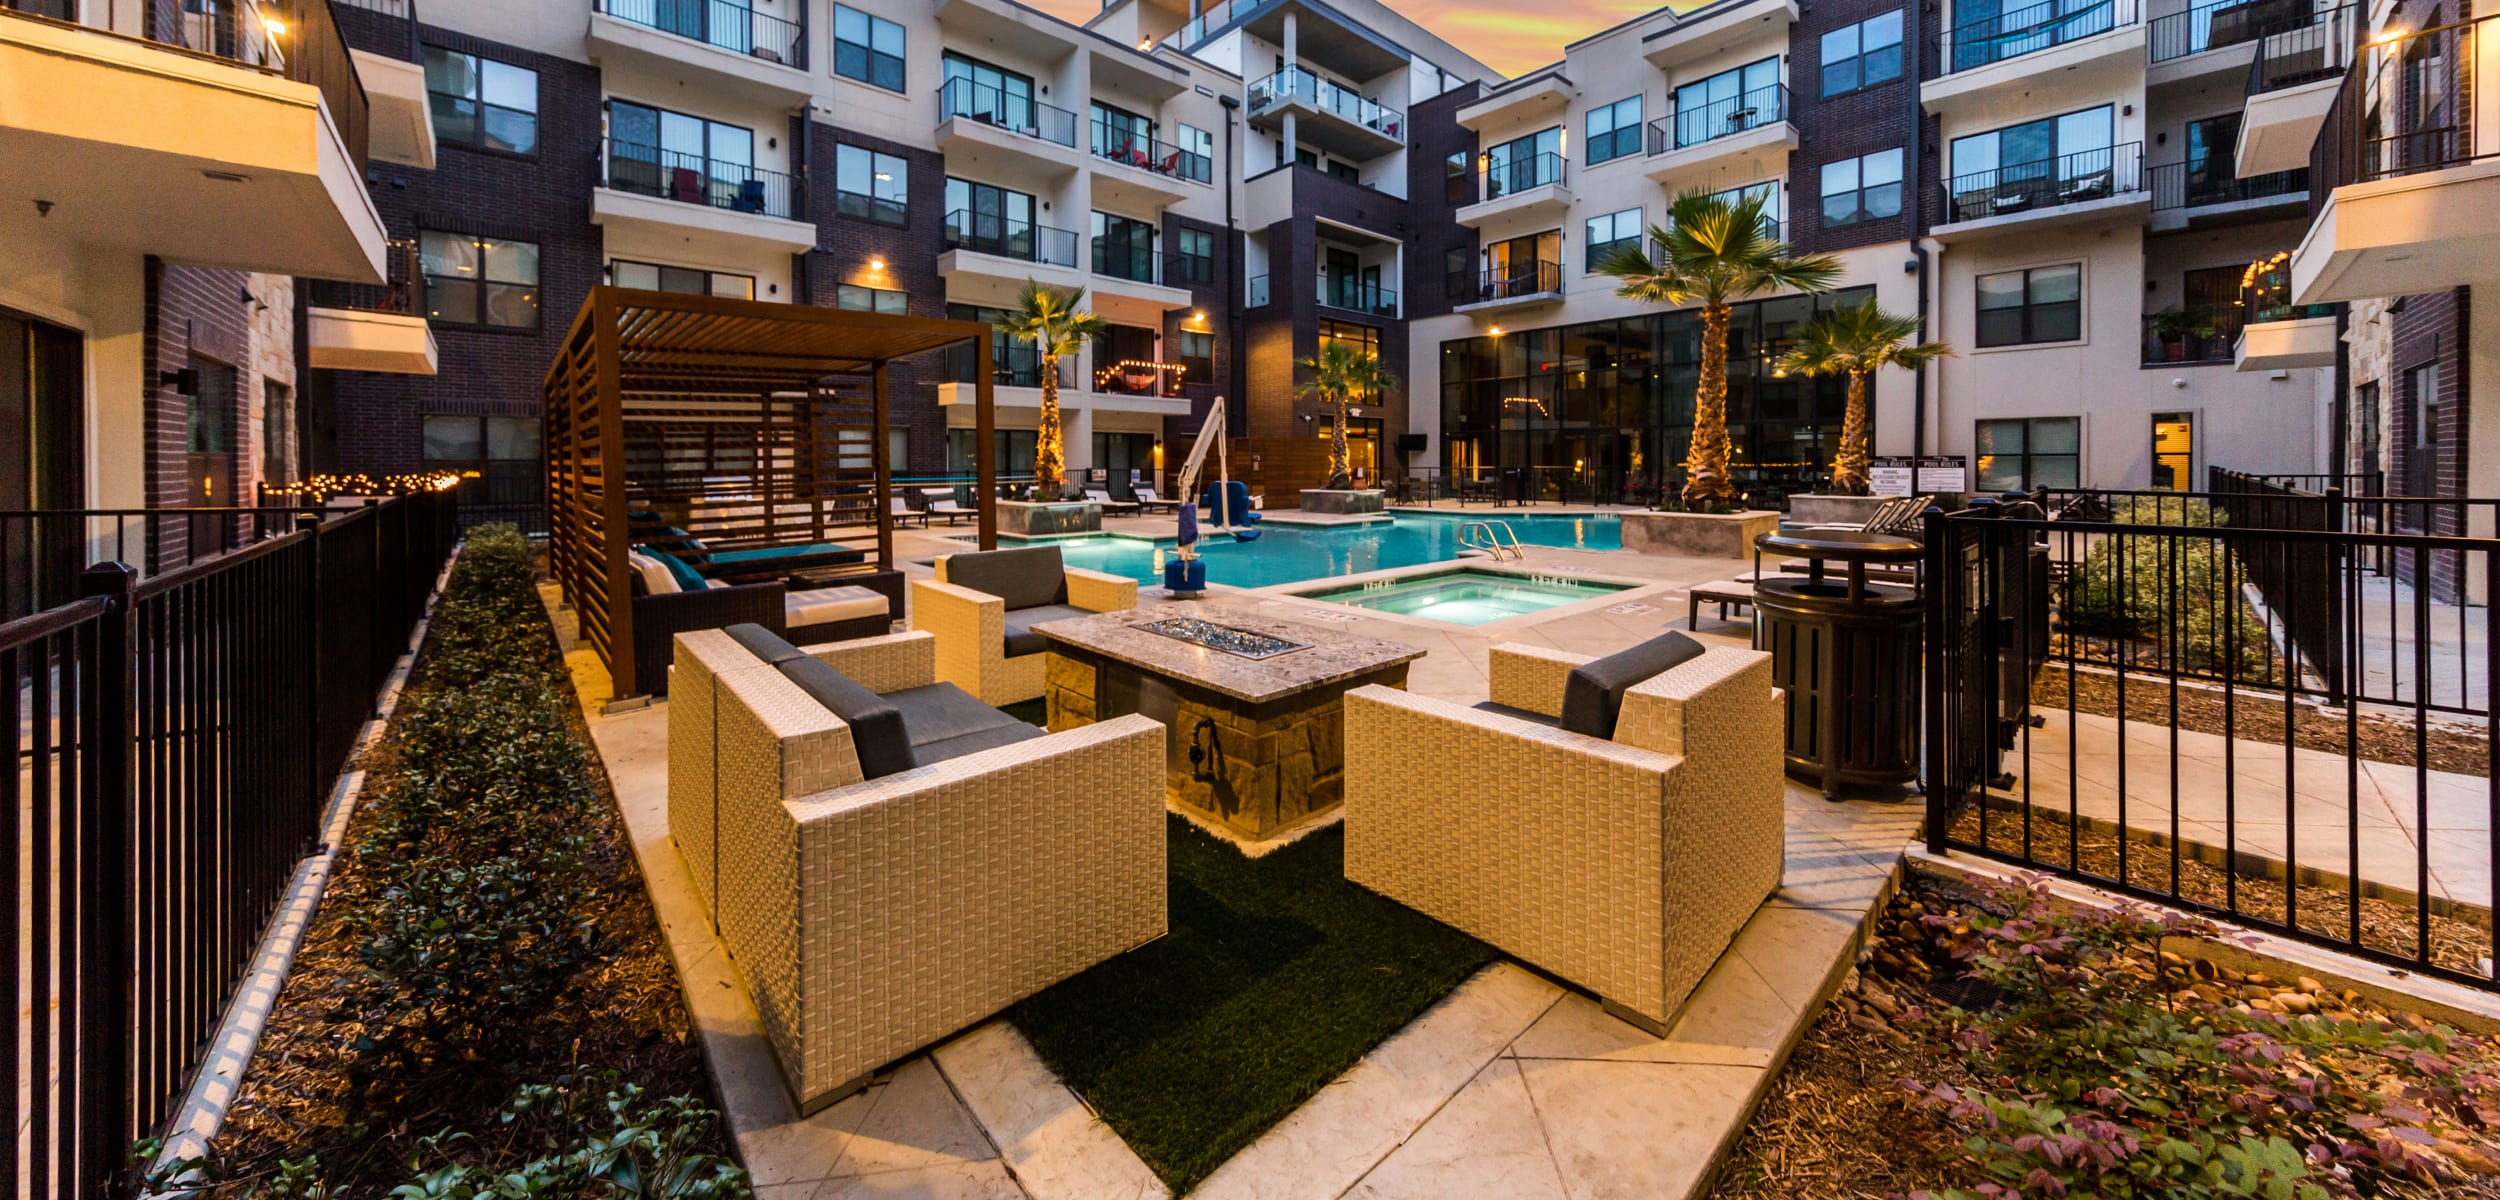 Resort-style poolside lounge at Marq 31 in Houston, Texas